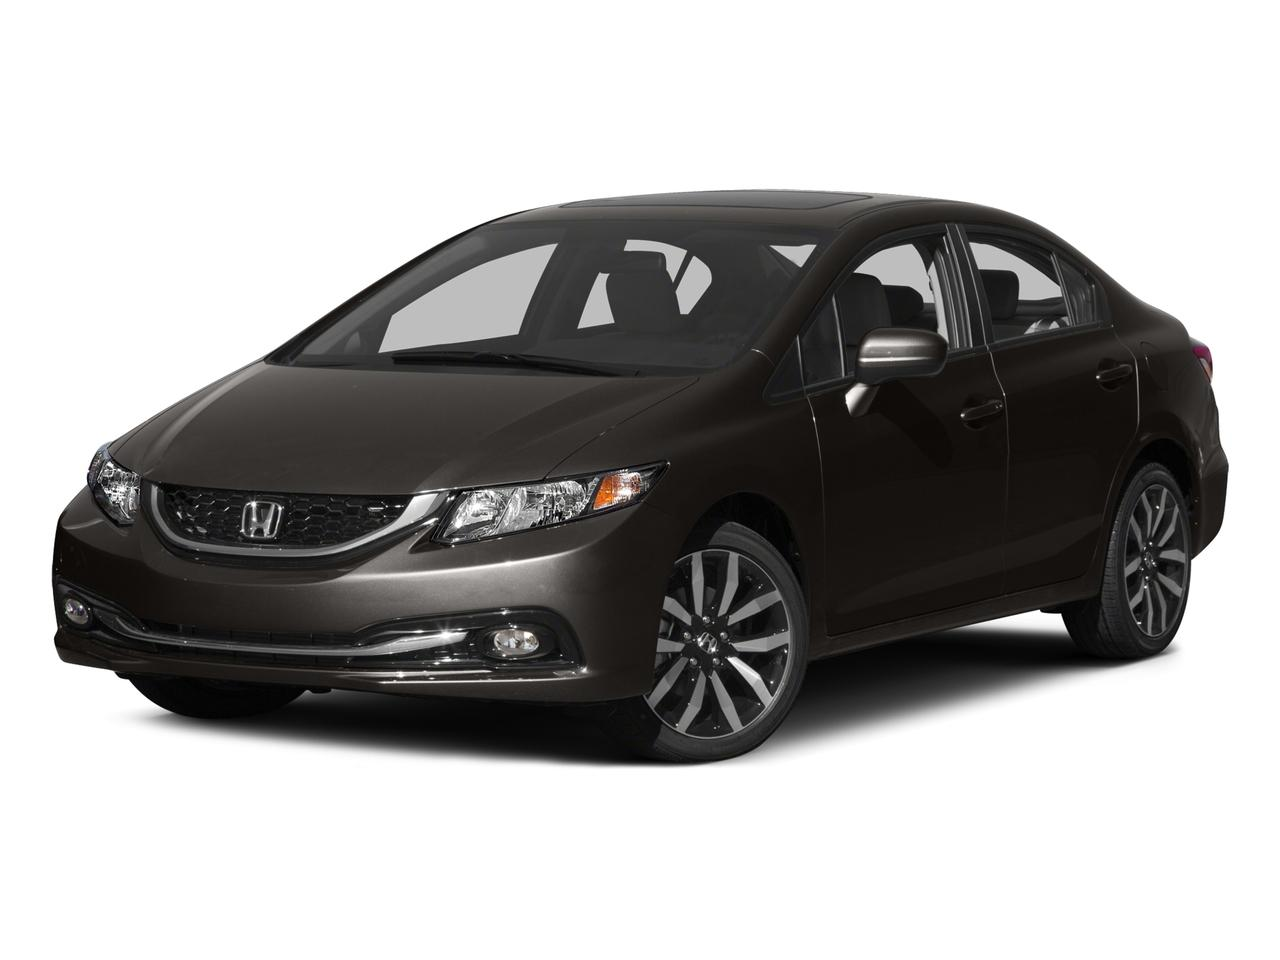 2015 Honda Civic Sedan Vehicle Photo in Plainfield, IL 60586